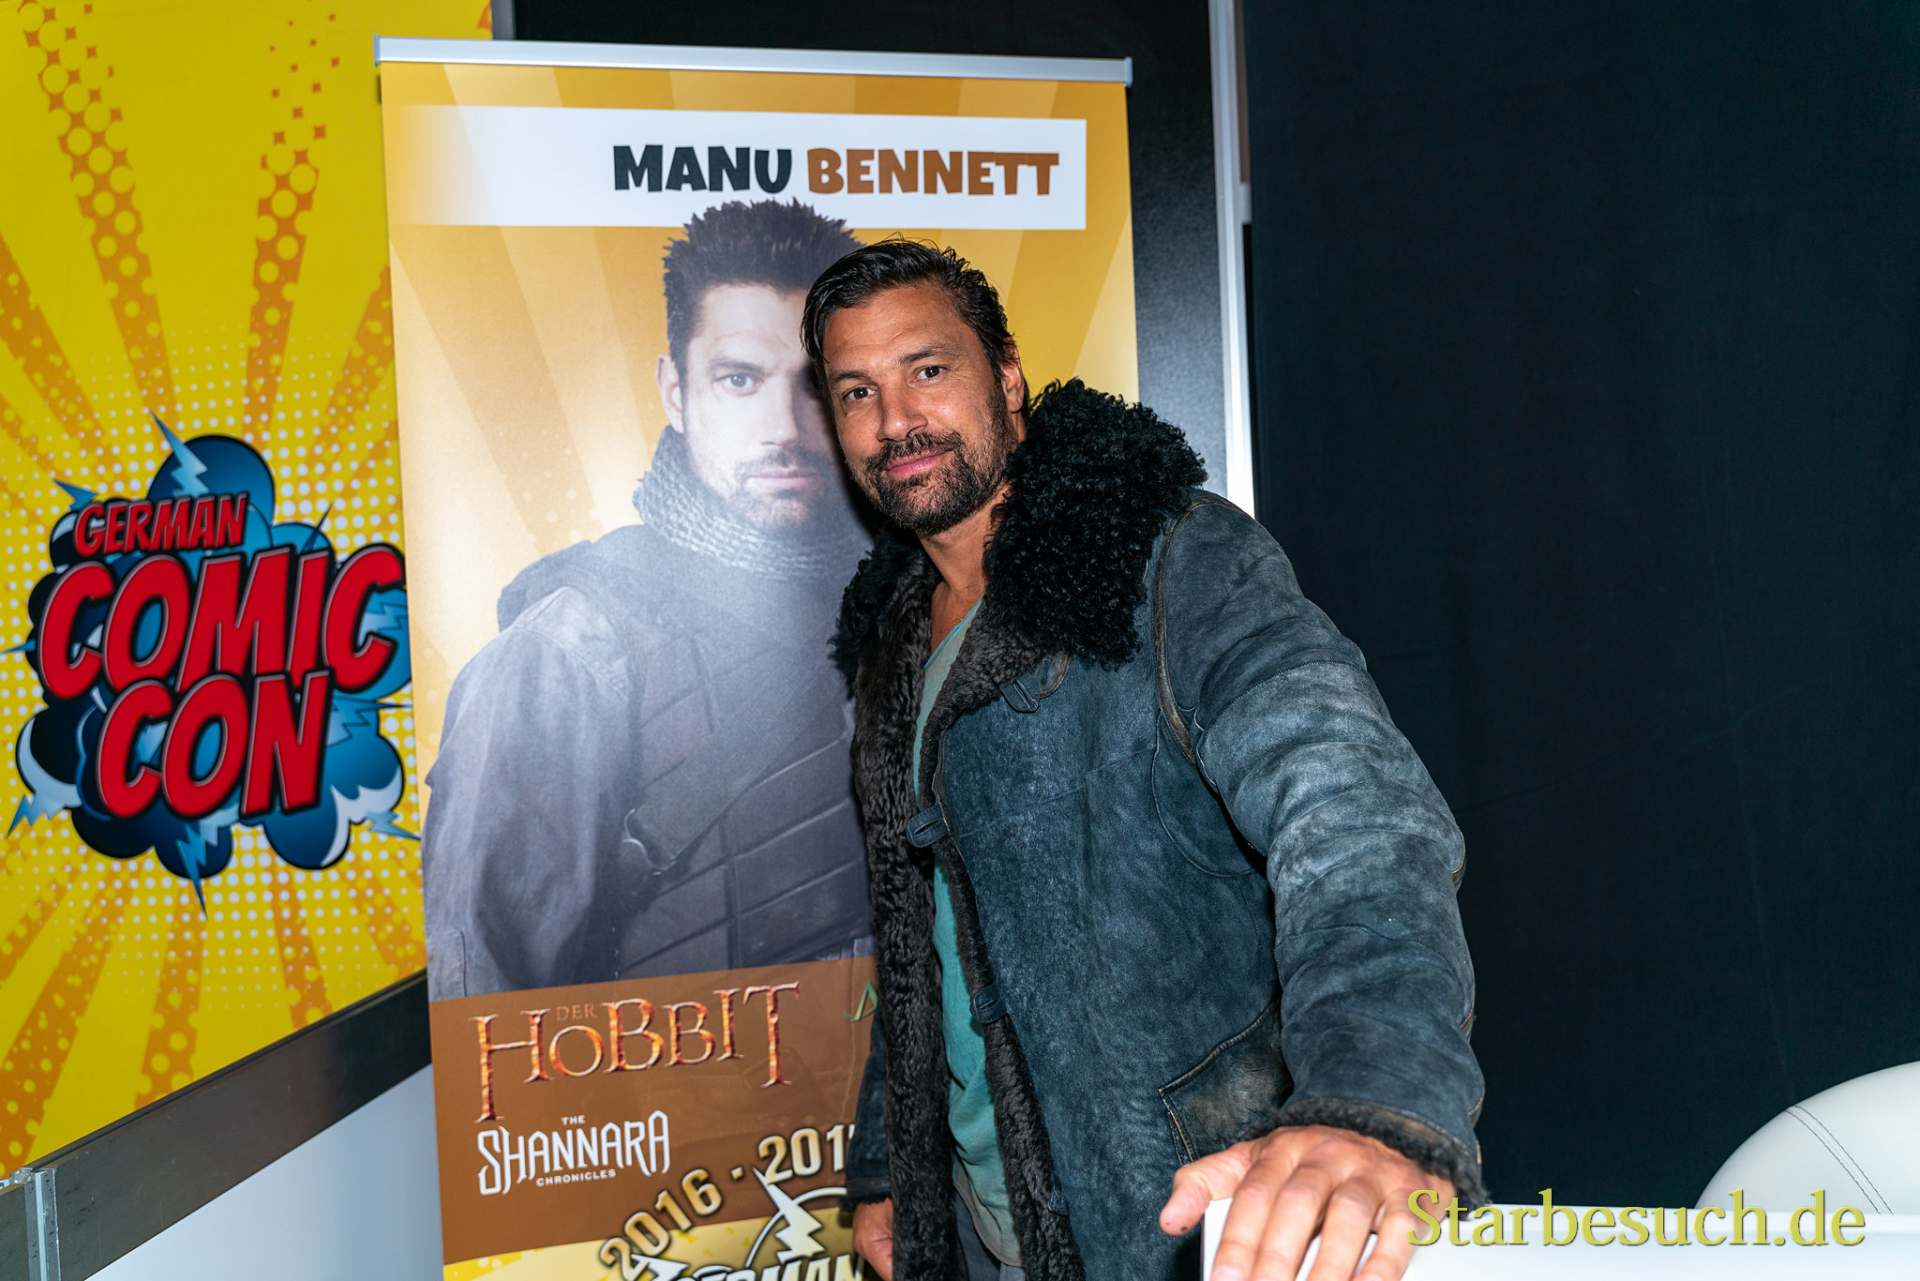 DORTMUND, GERMANY - December 8th 2019: Manu Bennett at German Comic Con Dortmund